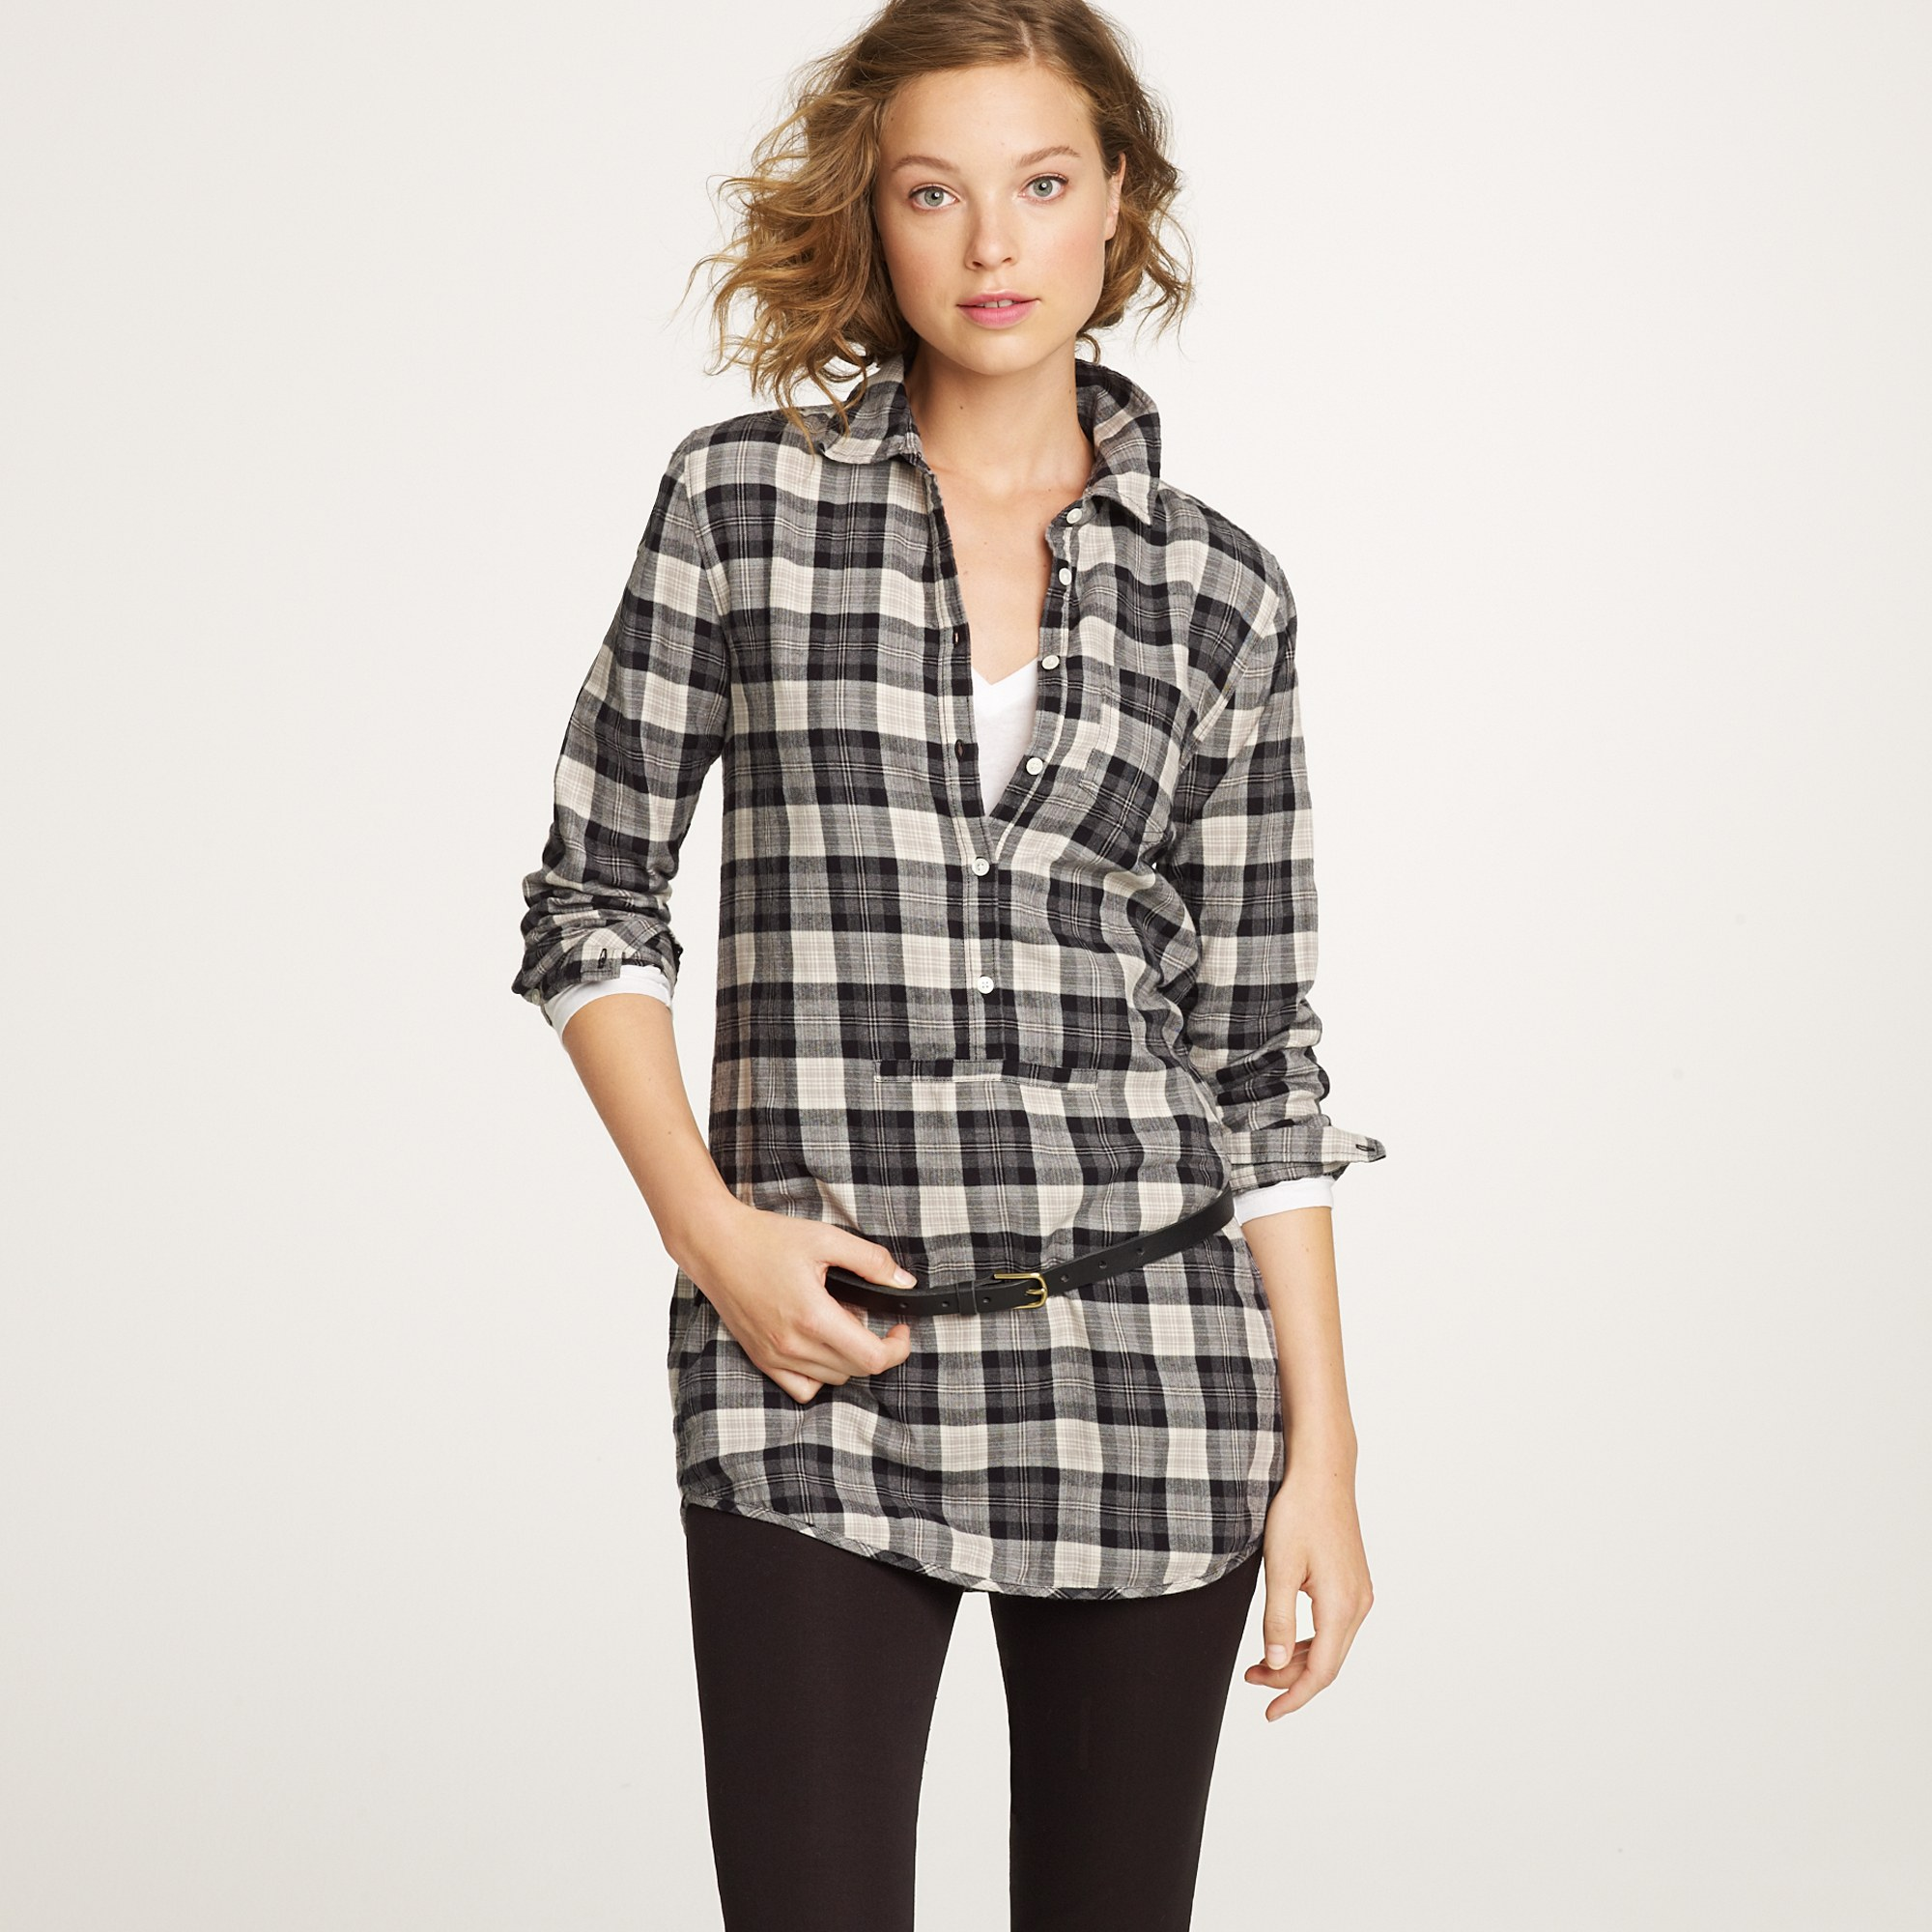 Shop Flannel Shirts for Women at piserialajax.cf Factory and find everyday deals on Women's Shirts & Tops.